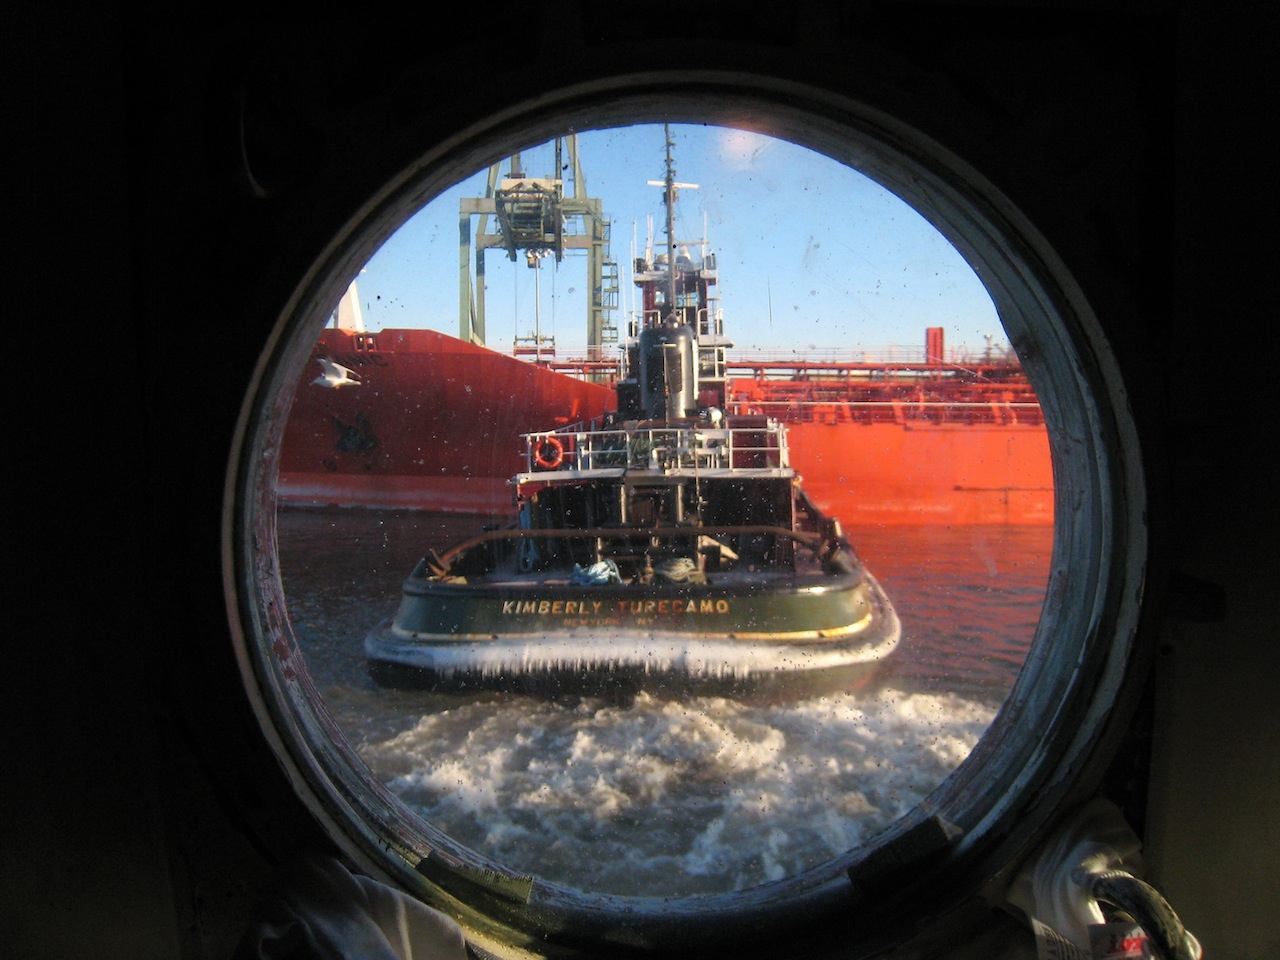 A dishwashing view of the Kimberly Turecamo tugboat docking a ship; note the stern ice—it takes a lot to freeze salt water